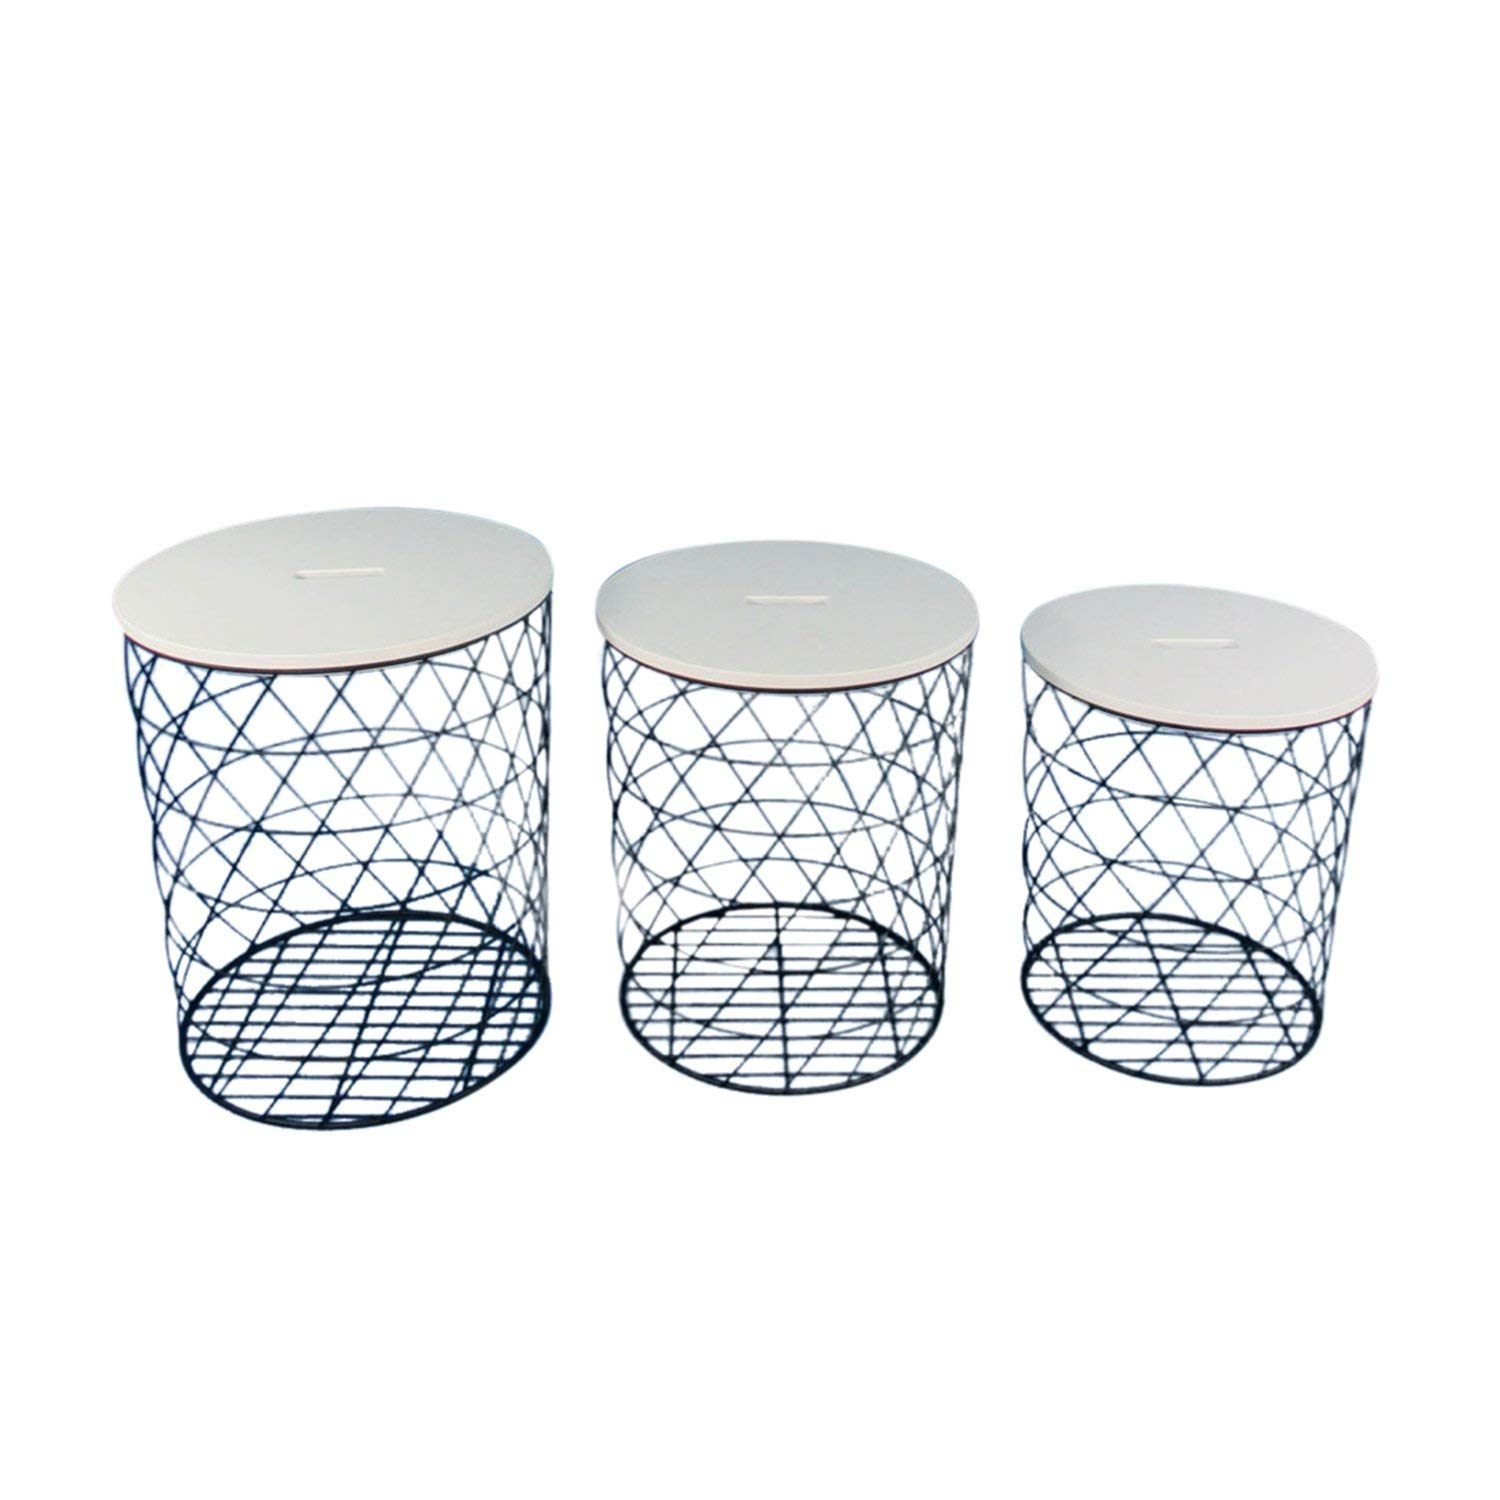 timmy night accent table black sagebrook home metal lamp shades furniture dining sets foot round tablecloth pier monarch bentwood with tempered glass marble top room white lucite